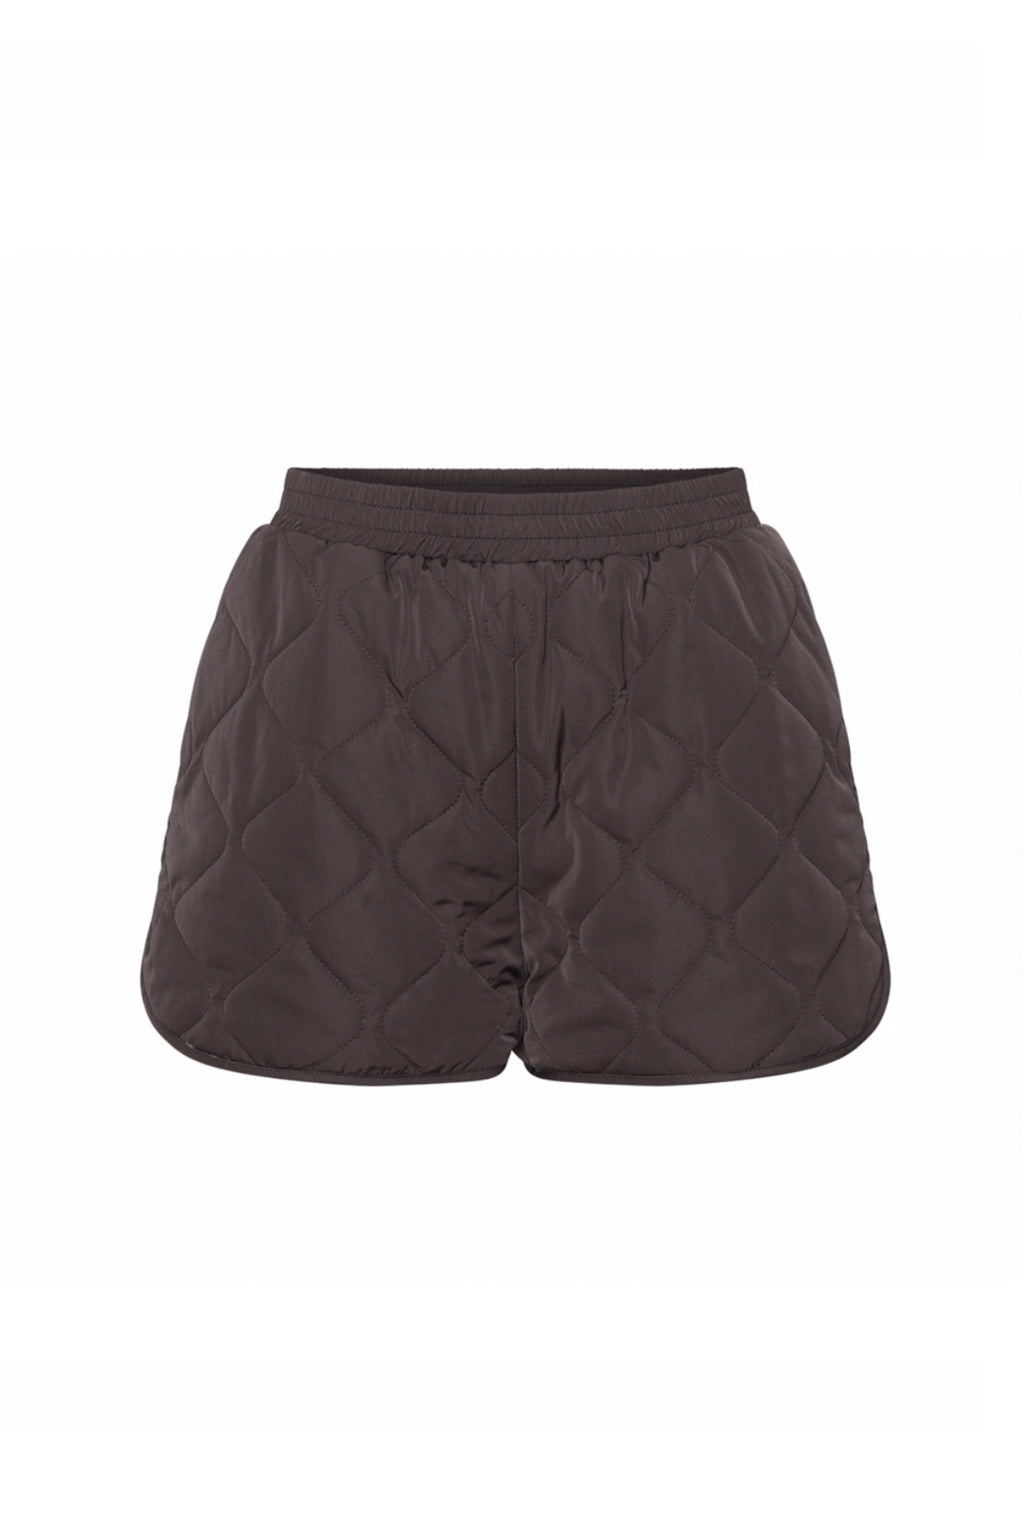 GATES - Quilted Shorts